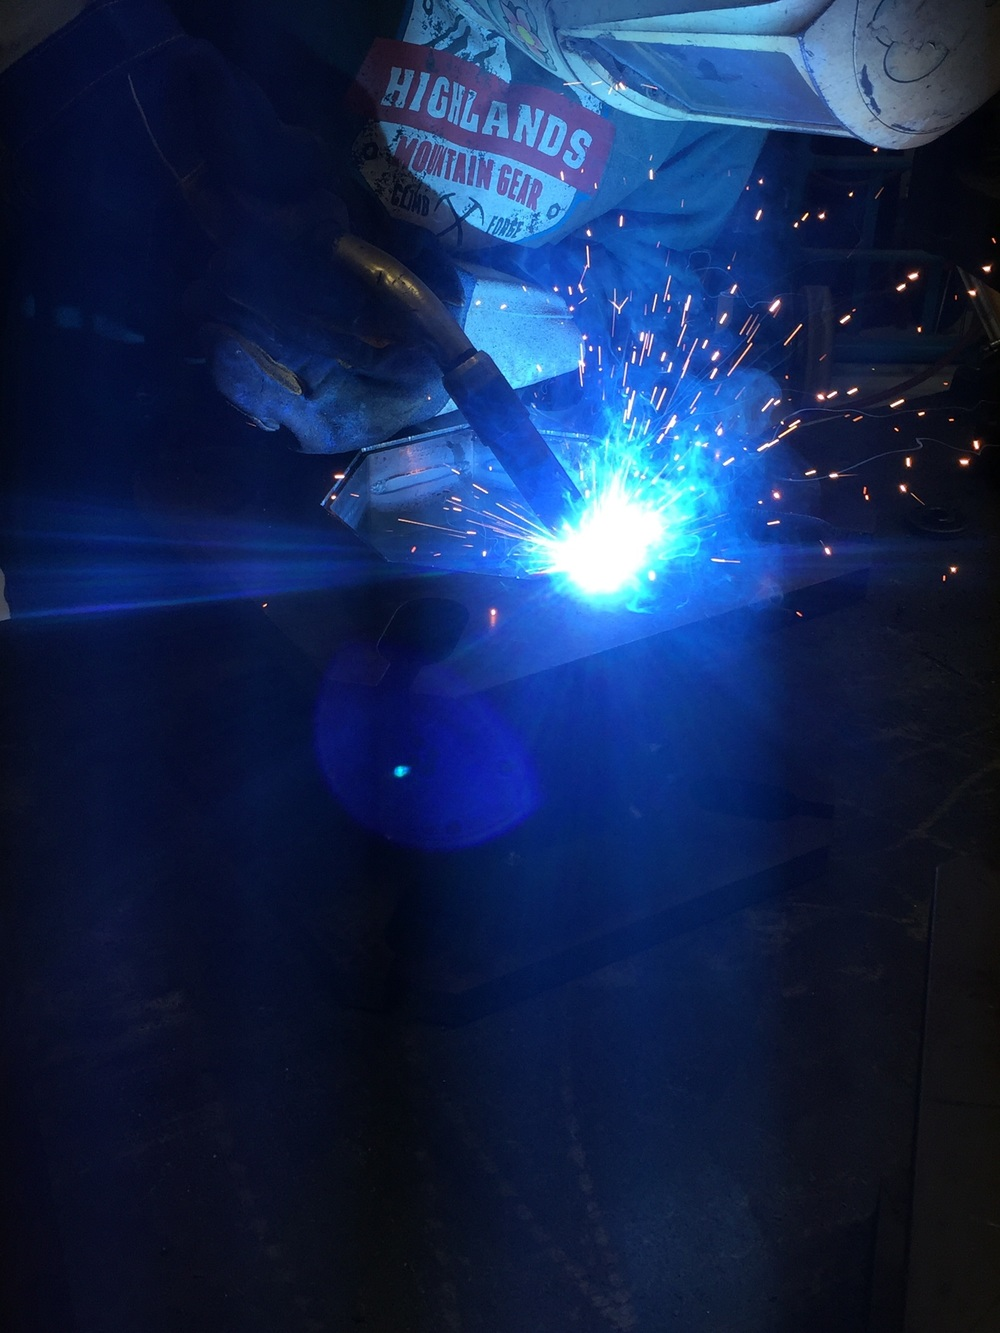 Nothing much to say about this photo other than it's an arty photo of our Fronius welding equipment and one of our super skilled welders.